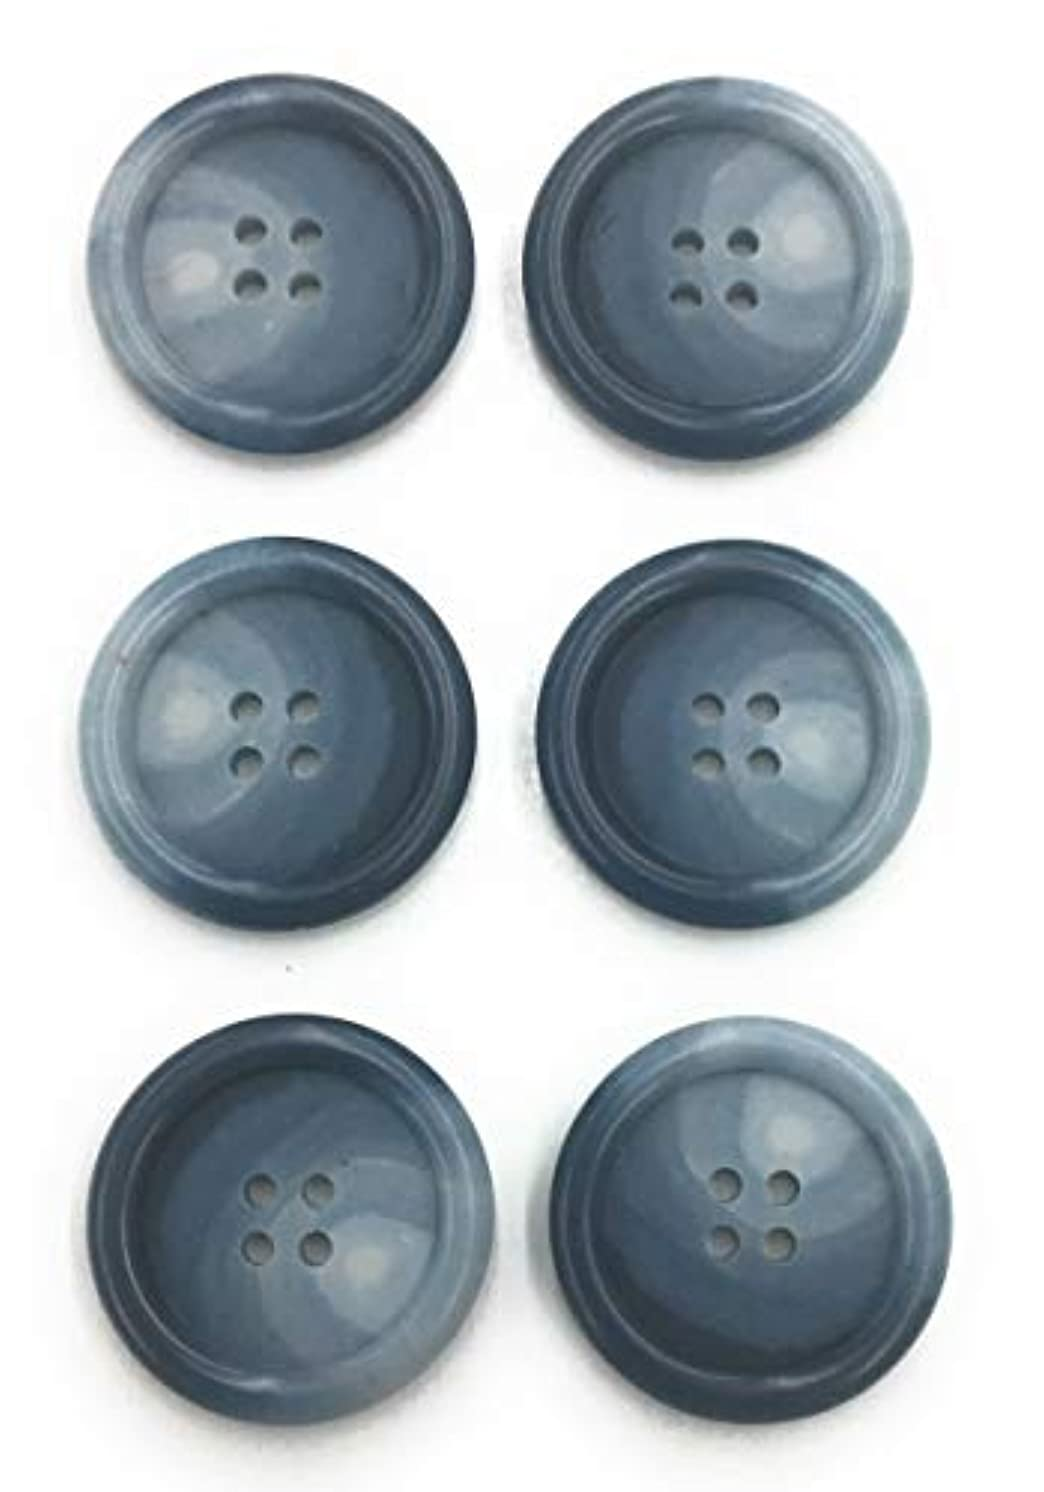 6 Marbleized Navy Blue Buttons Set- 1-1/8',1'', or3/4'' Tailored 4 Hole Sew On Buttons for Sportcoat, Dress,Blazer, Sport Coat and Jackets Sport Coats 6pc.1-1/8'', 1'', 3/4'' (.75)